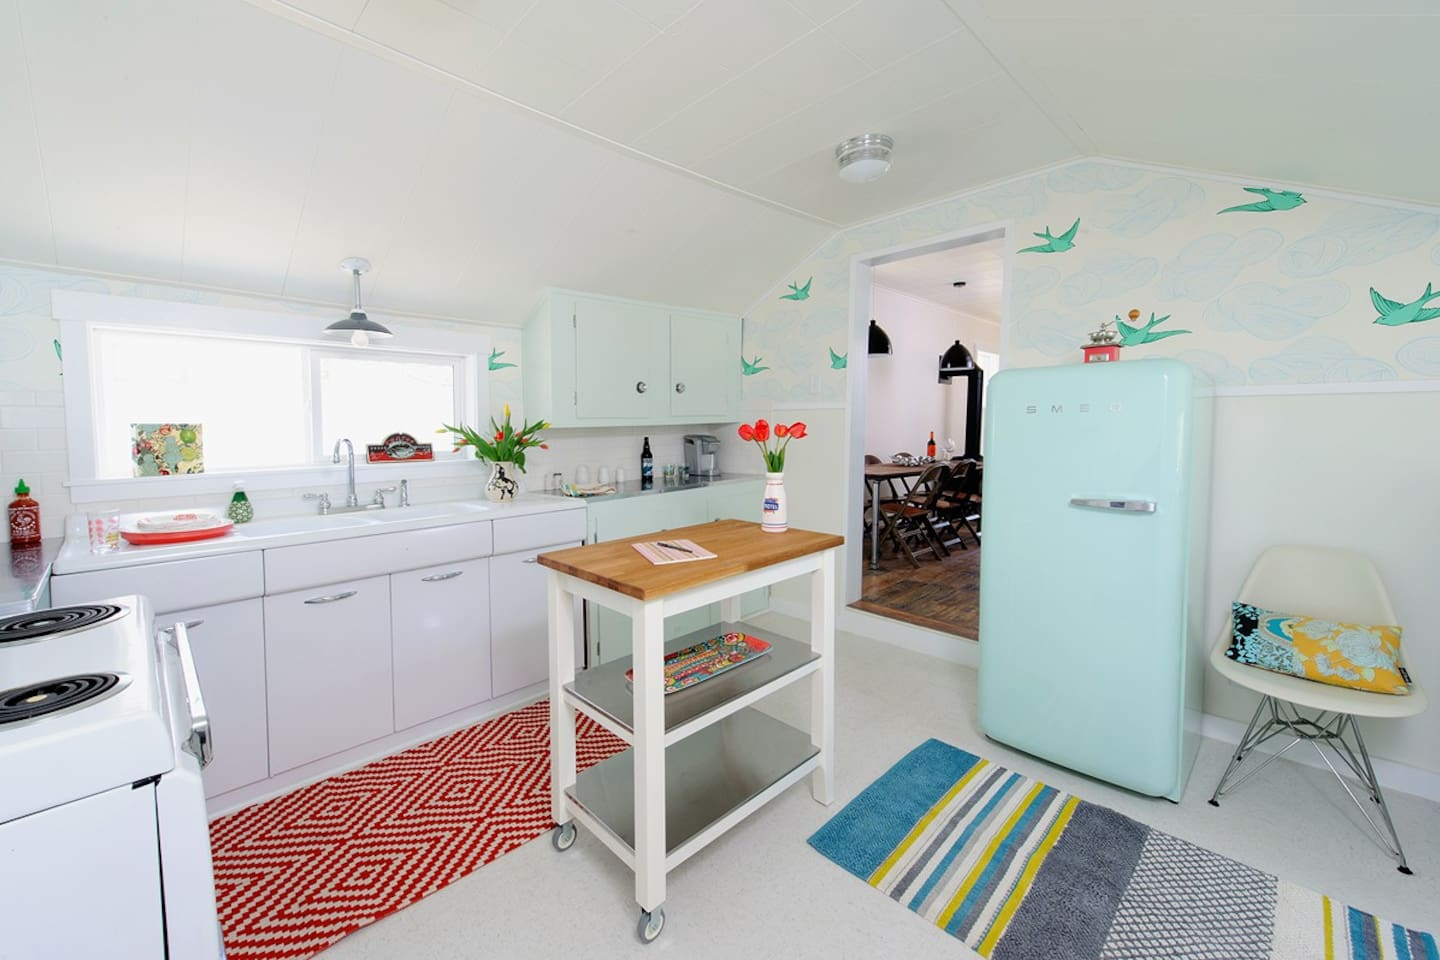 A bright, updated retro kitchen.